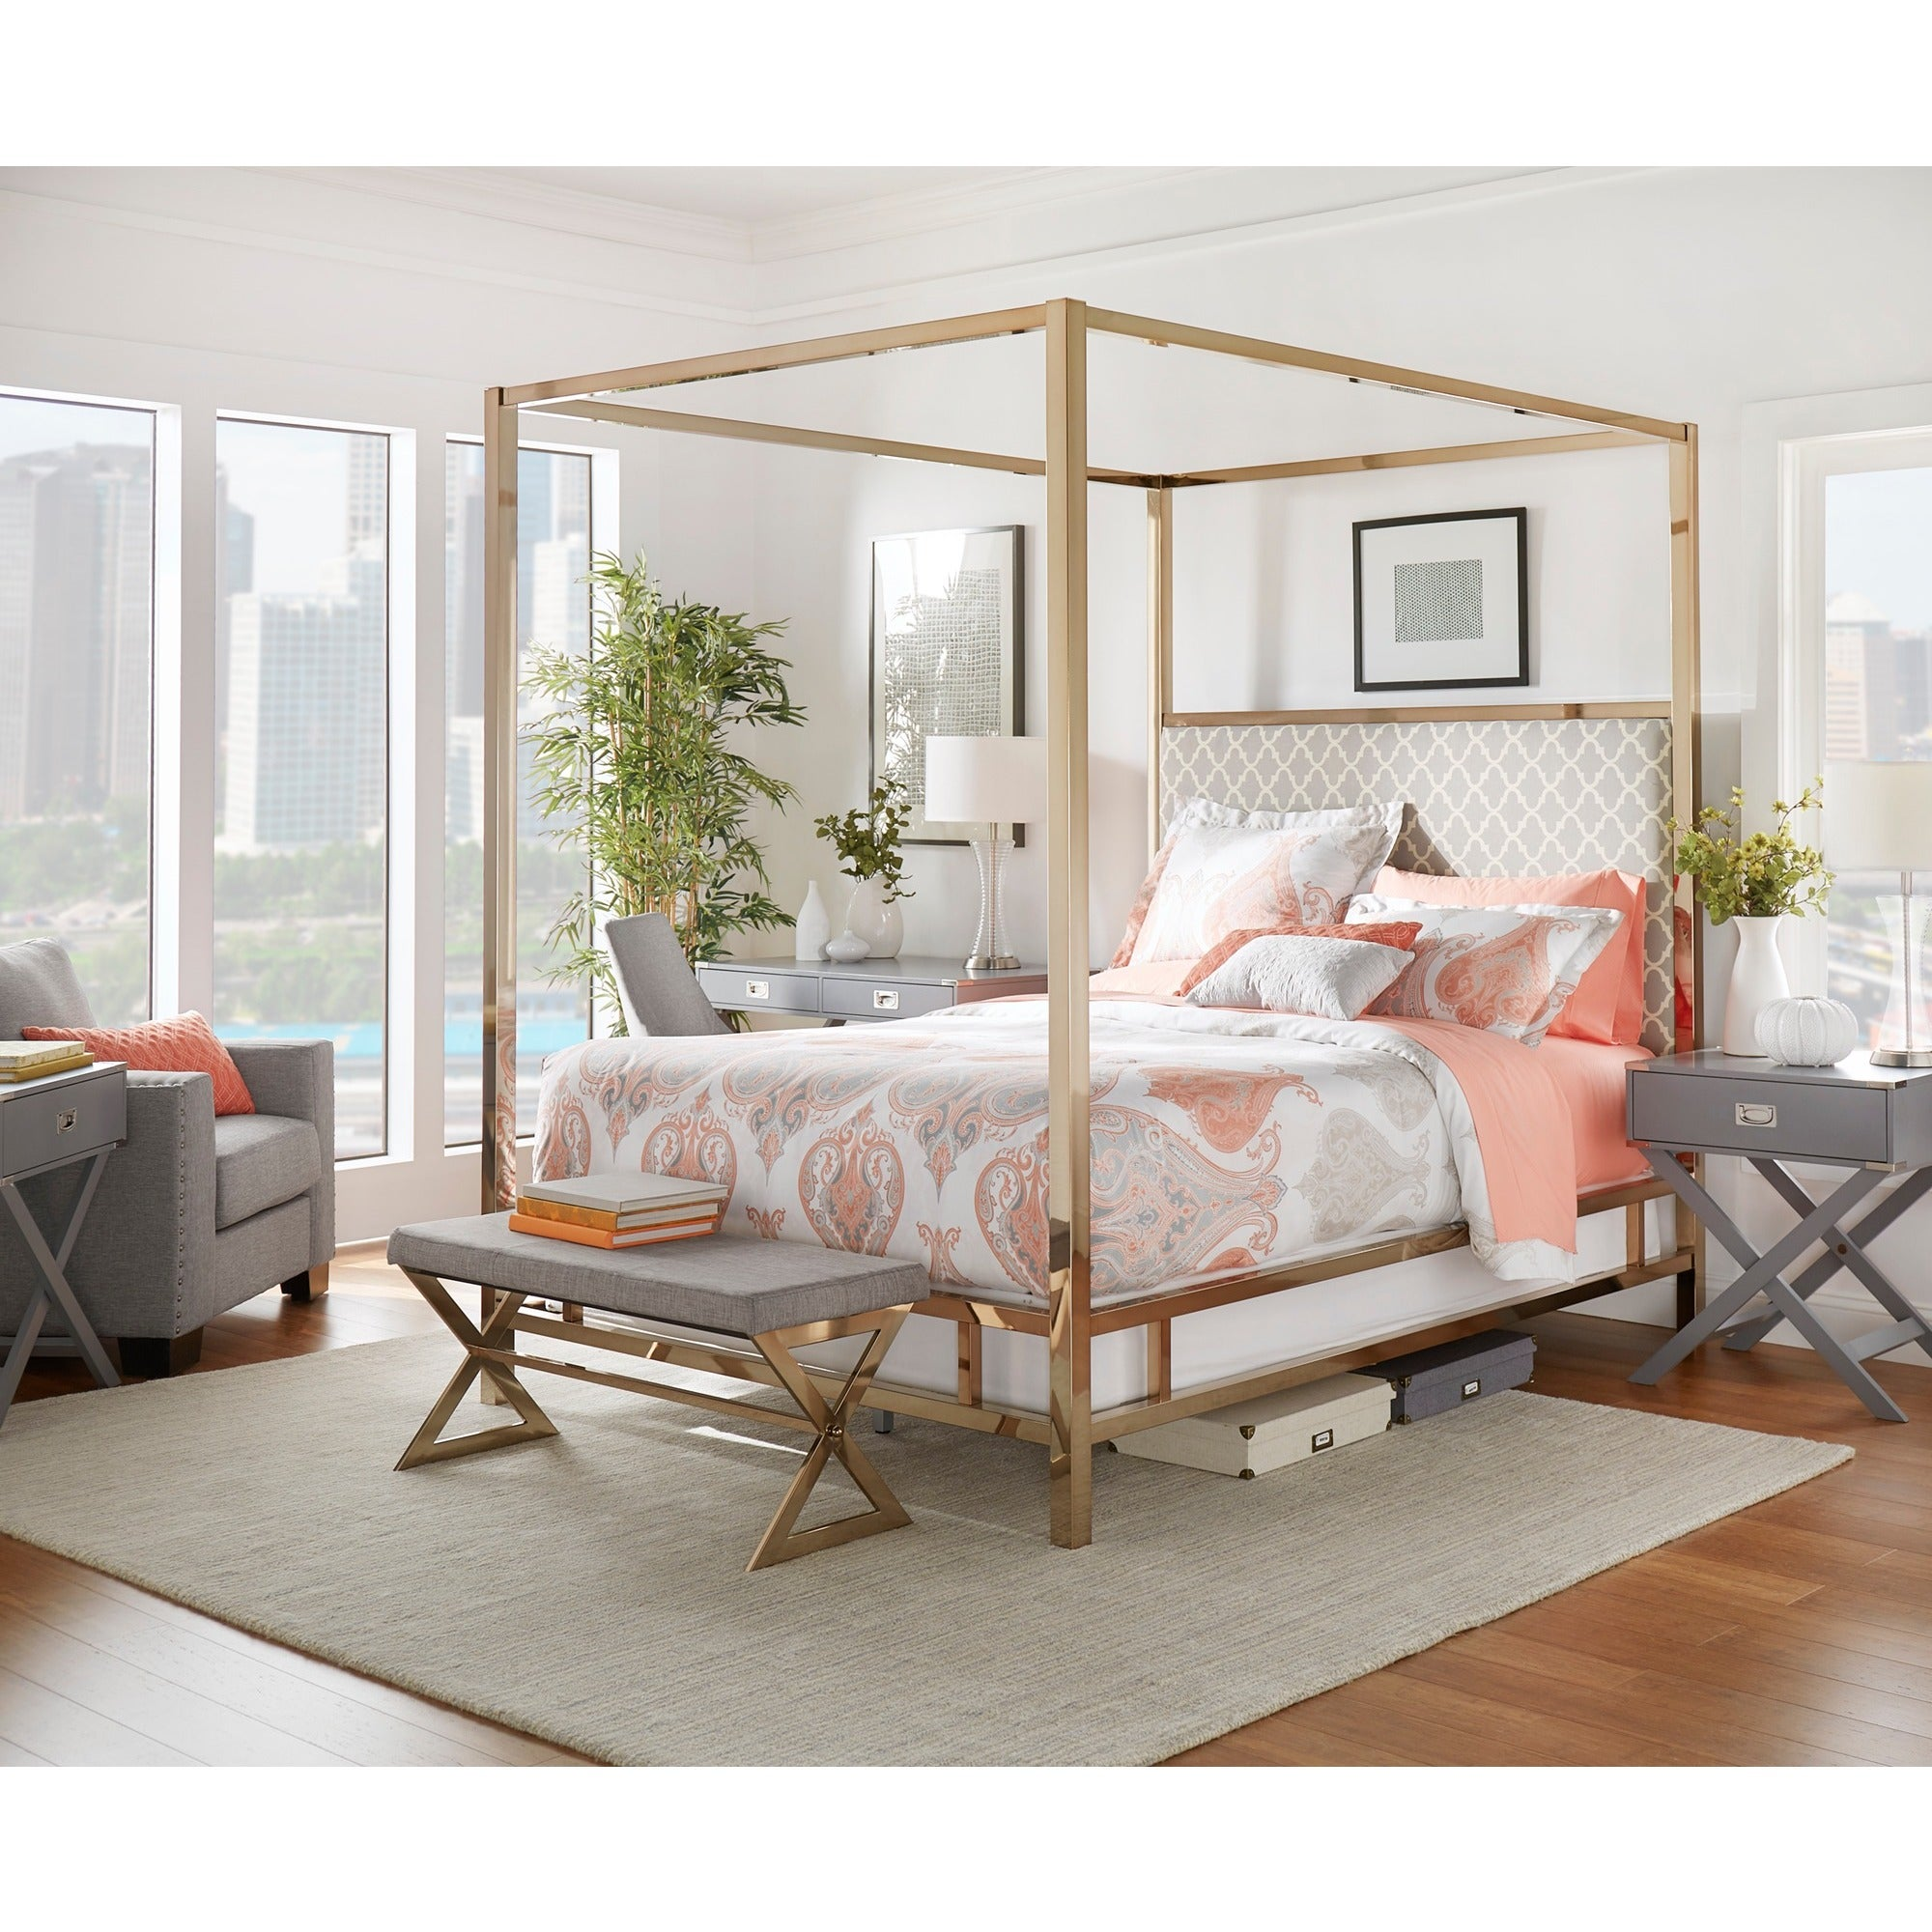 bed canopy king all chic image new of size nice